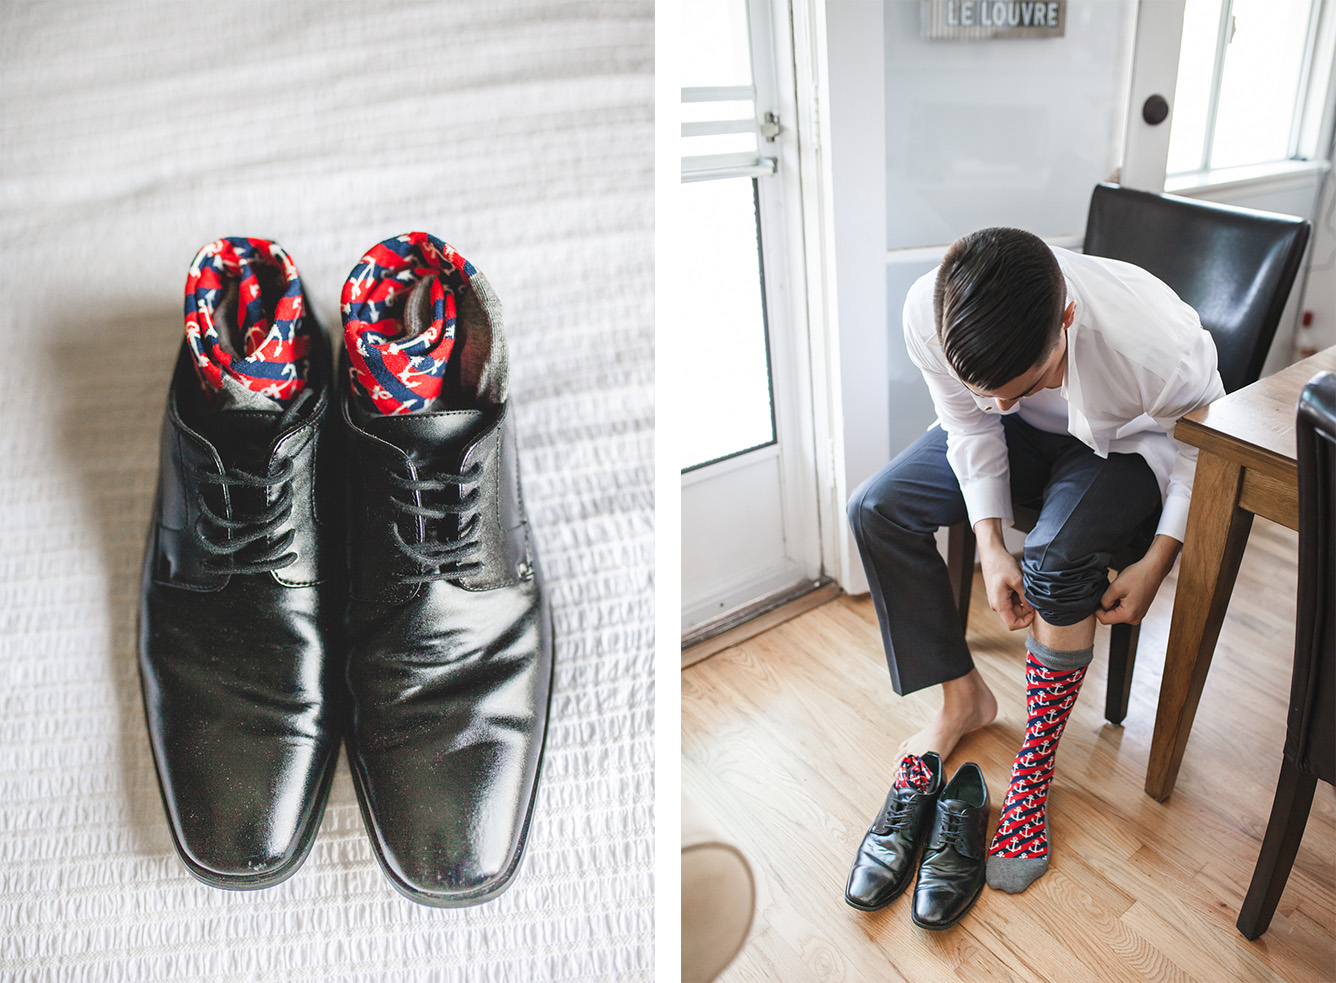 Meanwhile, Aaron getting ready separately with his groomsmen + dad + these rad socks.